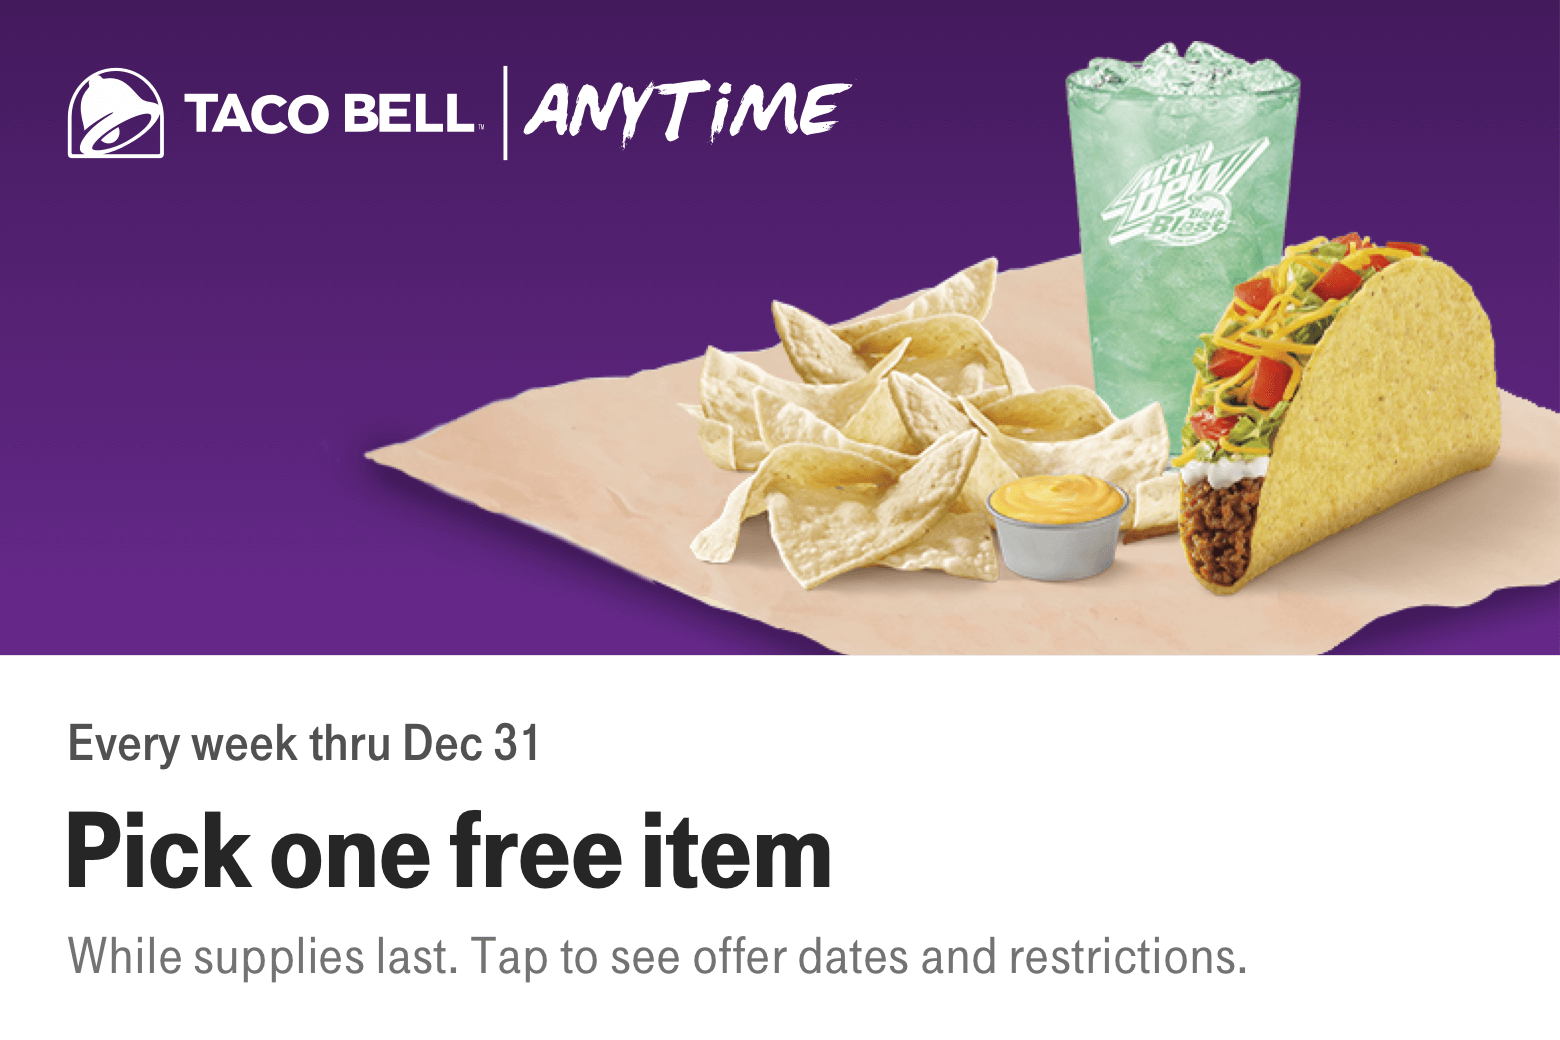 Taco Bell. Anytime. Every week thru December 16. Pick one free item. While supplies last. Tap to see offer dates and restrictions.